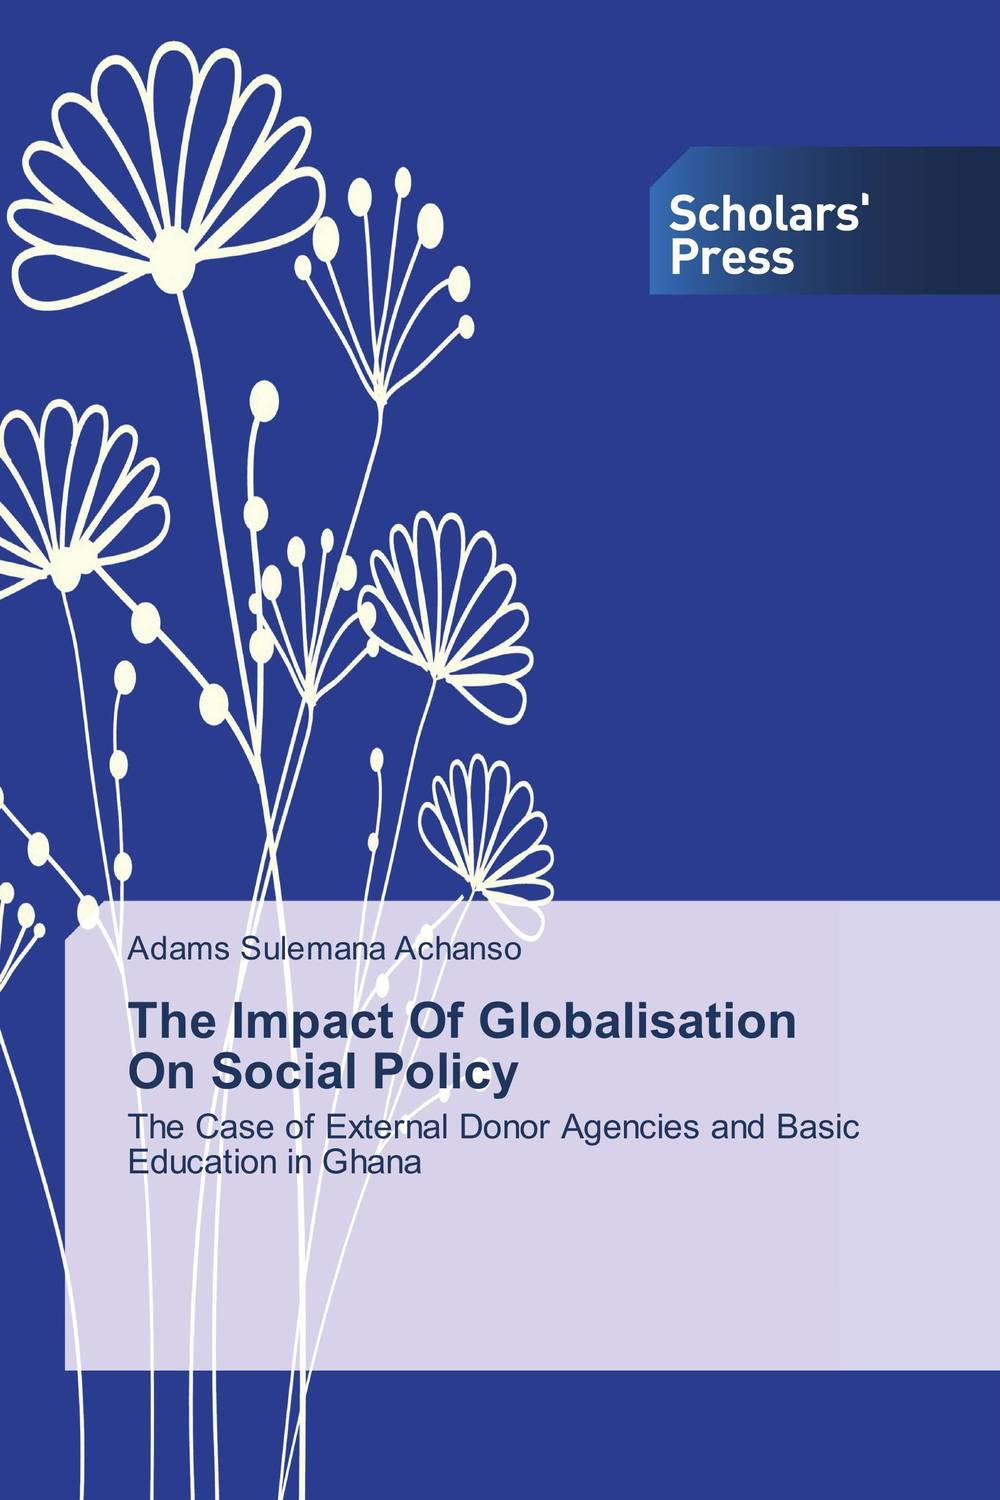 The Impact Of Globalisation On Social Policy tinashe nyatoro the impact of aid dependence on social development